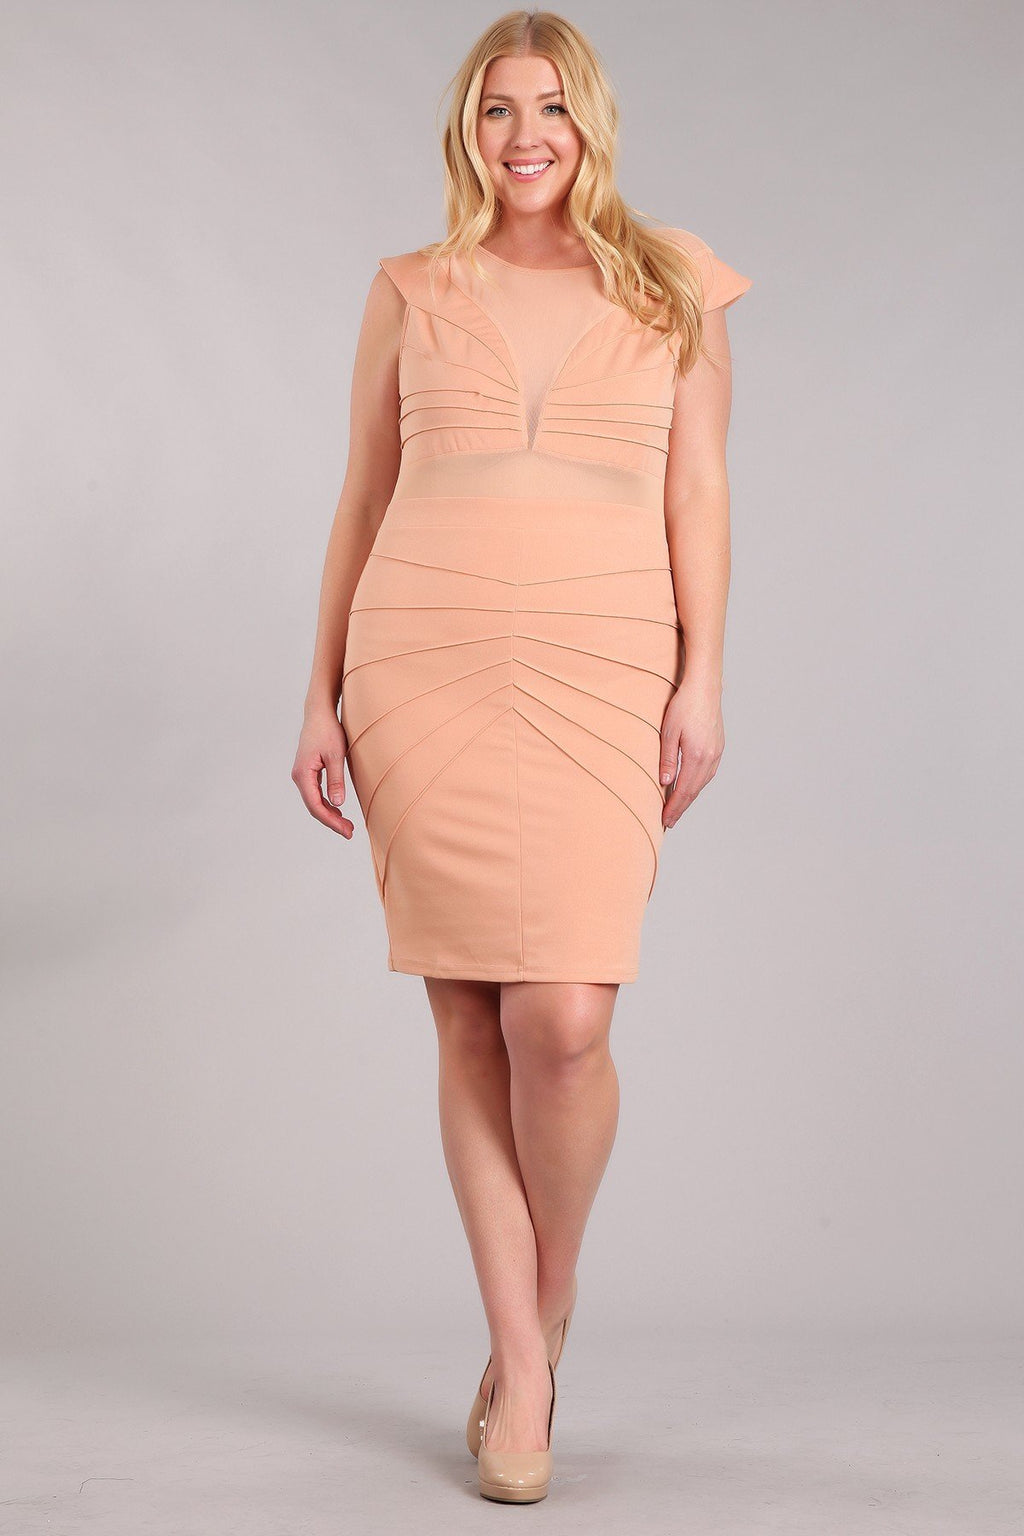 Plus Size Beautiful Solid Short Bodycon Dress